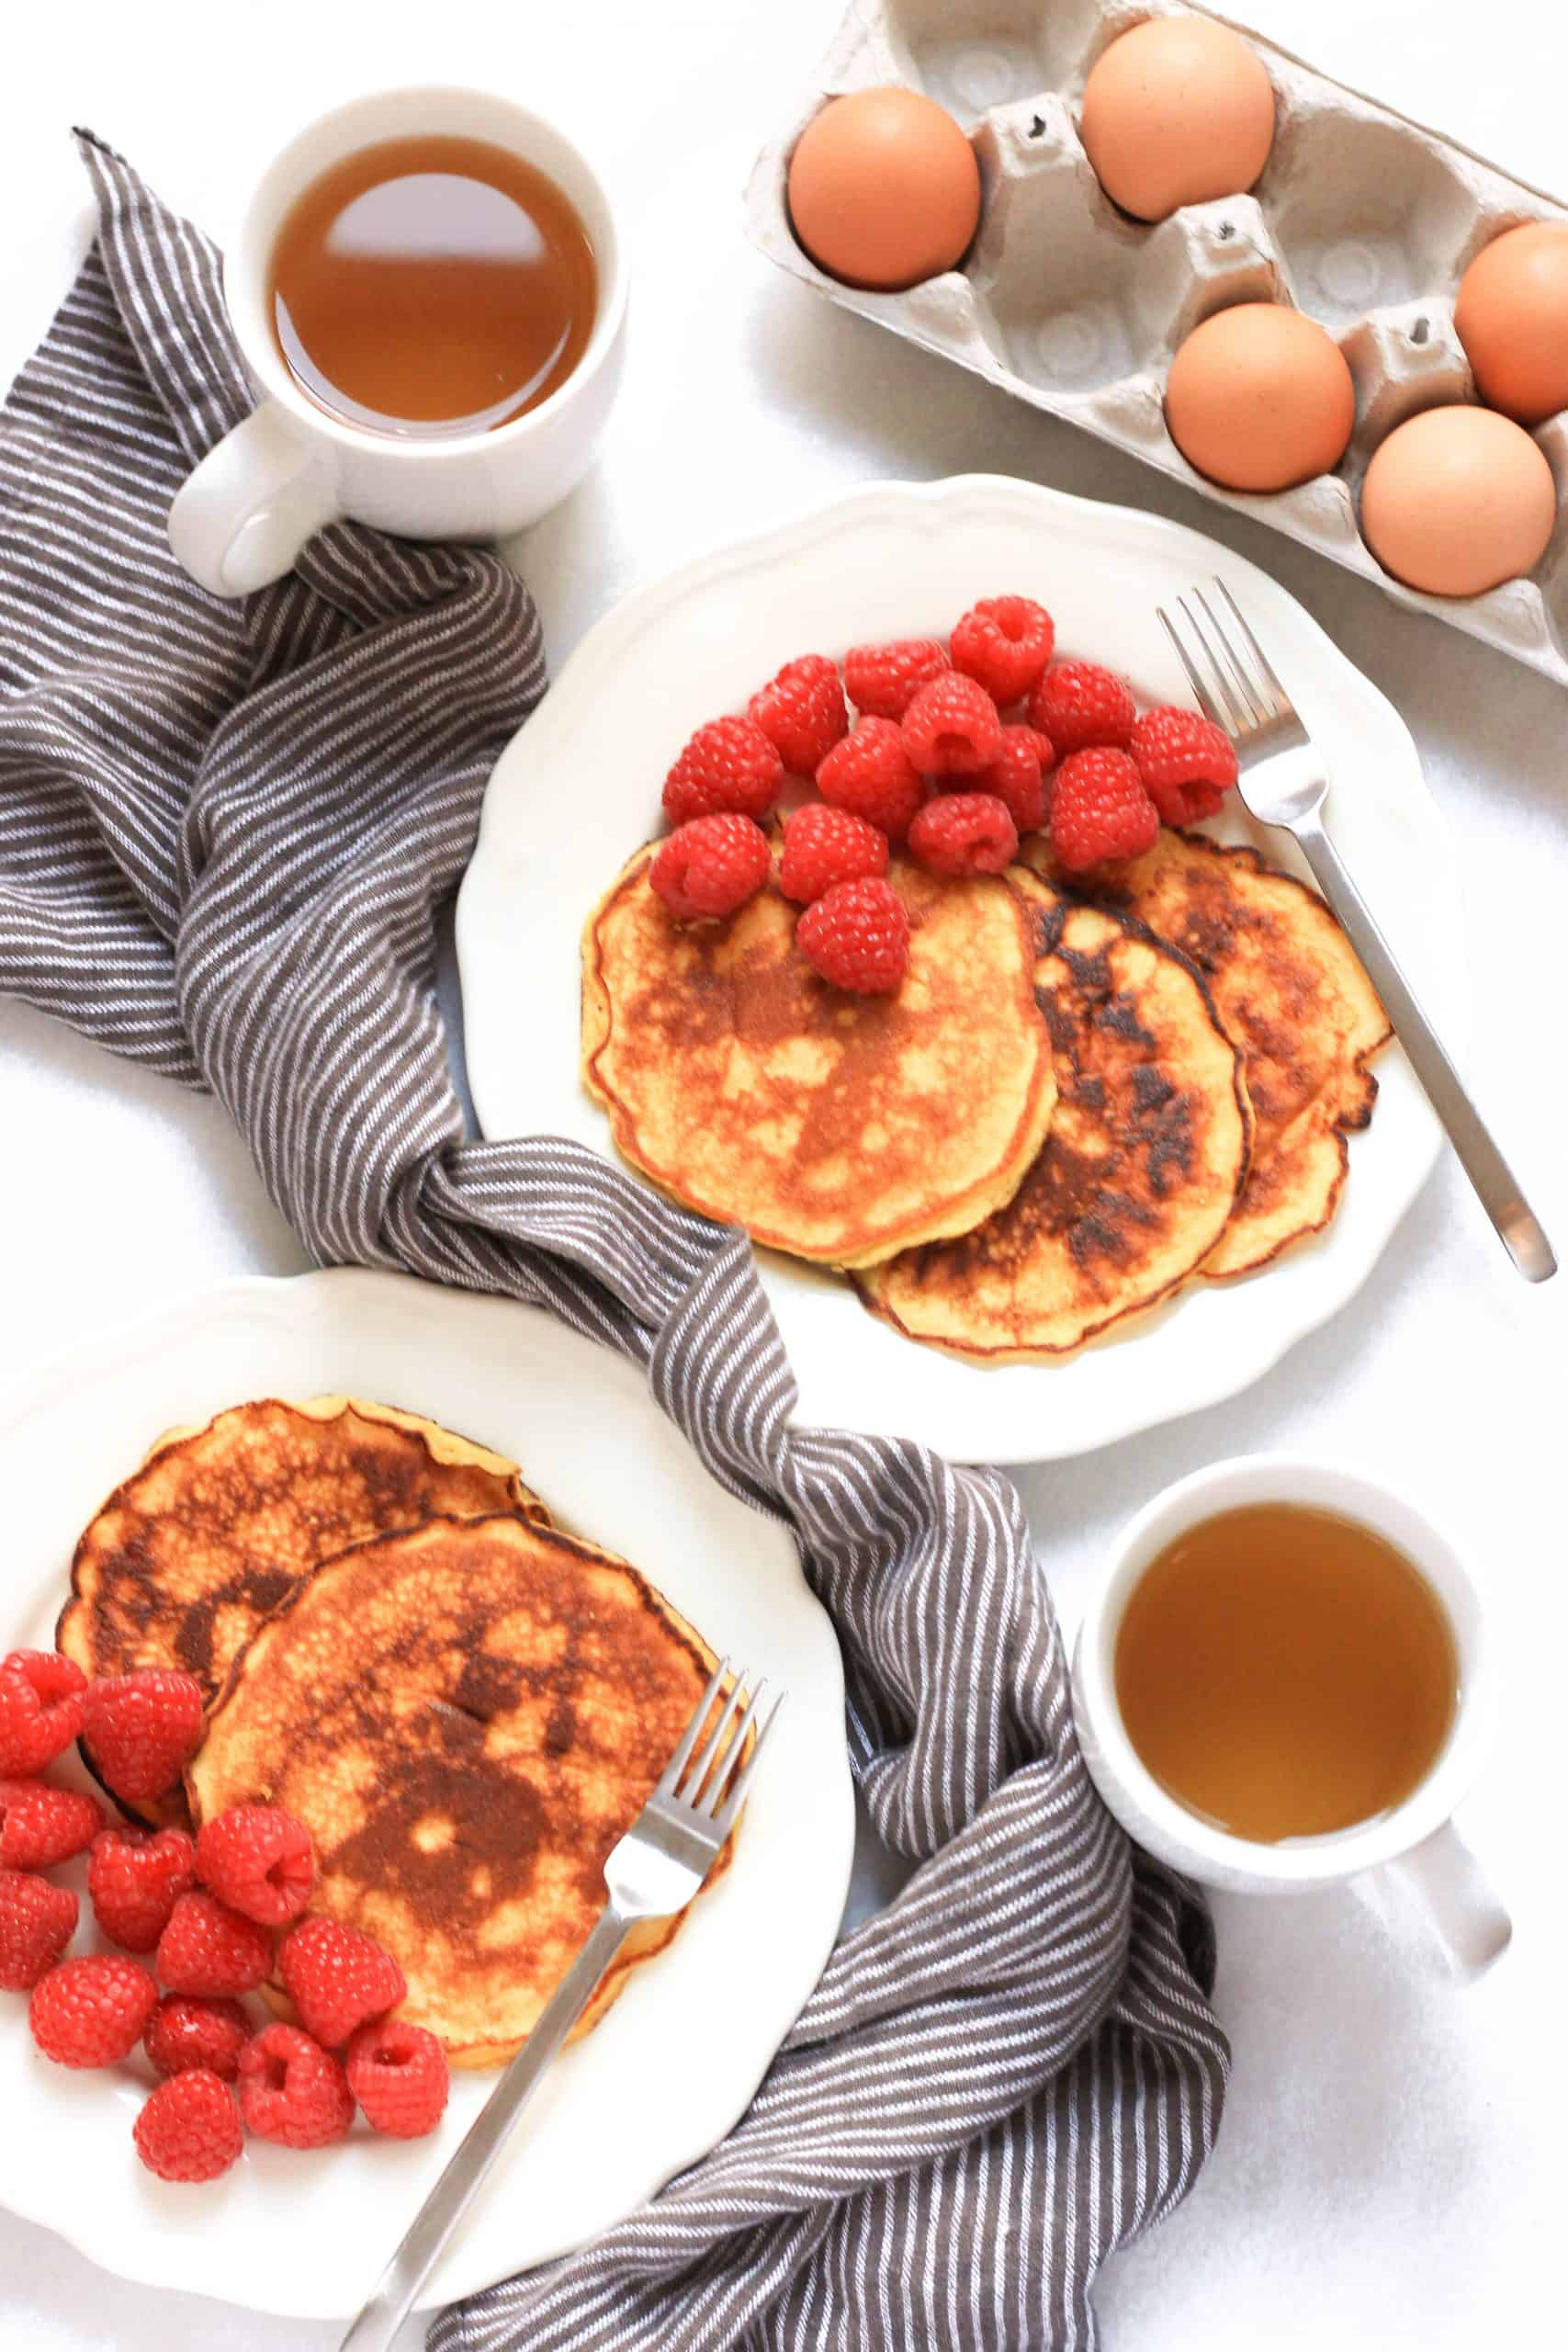 Top down shot of two plates of pancakes with fresh berries and tea.